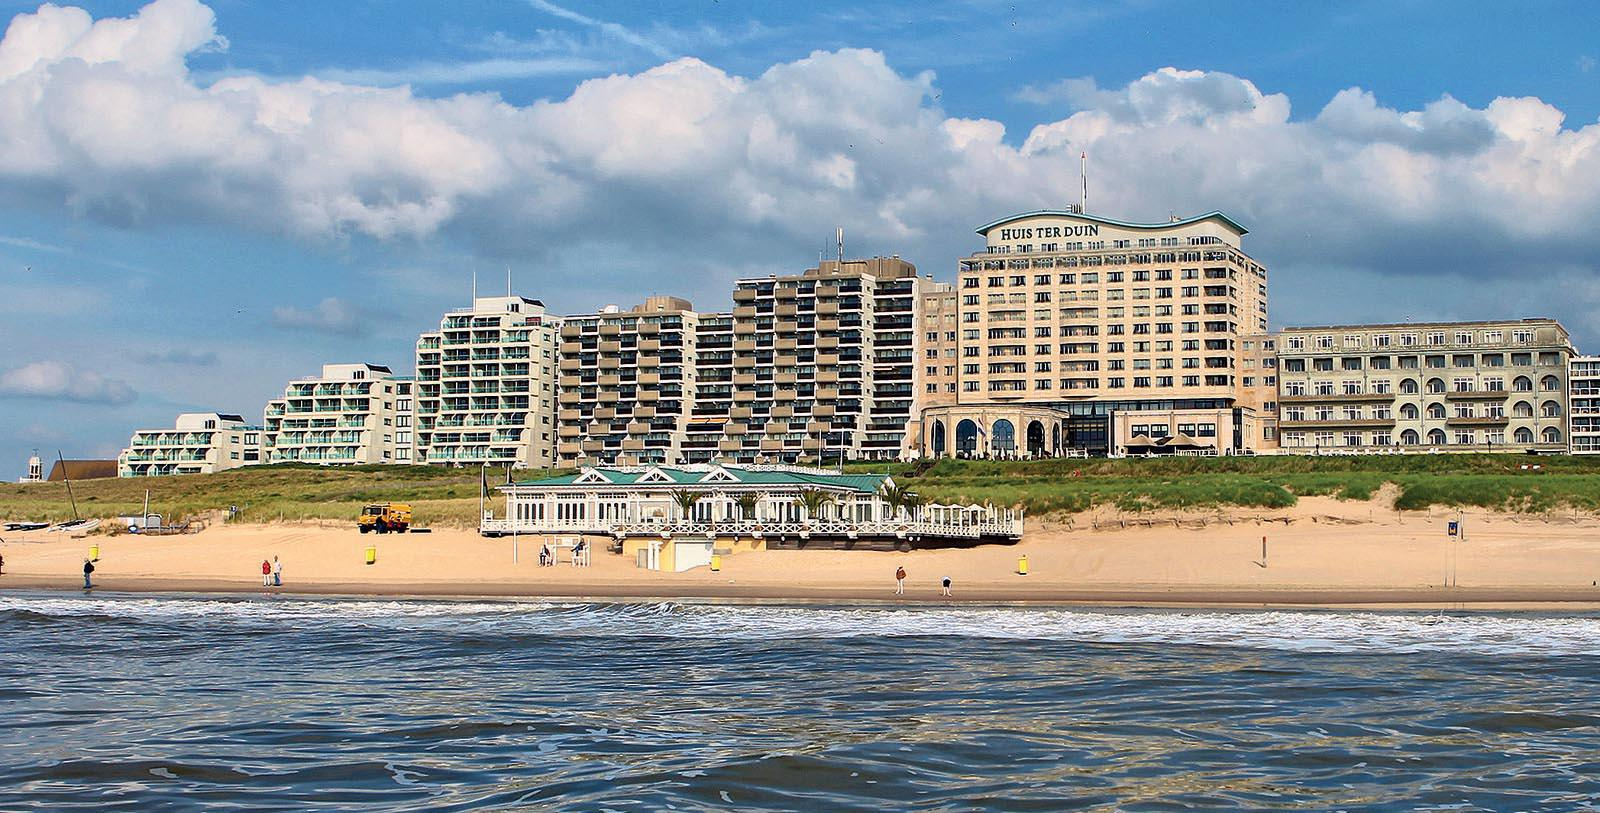 Image of Hotel Exterior & Beach, Grand Hotel Huis ter Duin, Noordwijk aan Zee, Netherlands, 1885, Member of Historic Hotels Worldwide, Overview